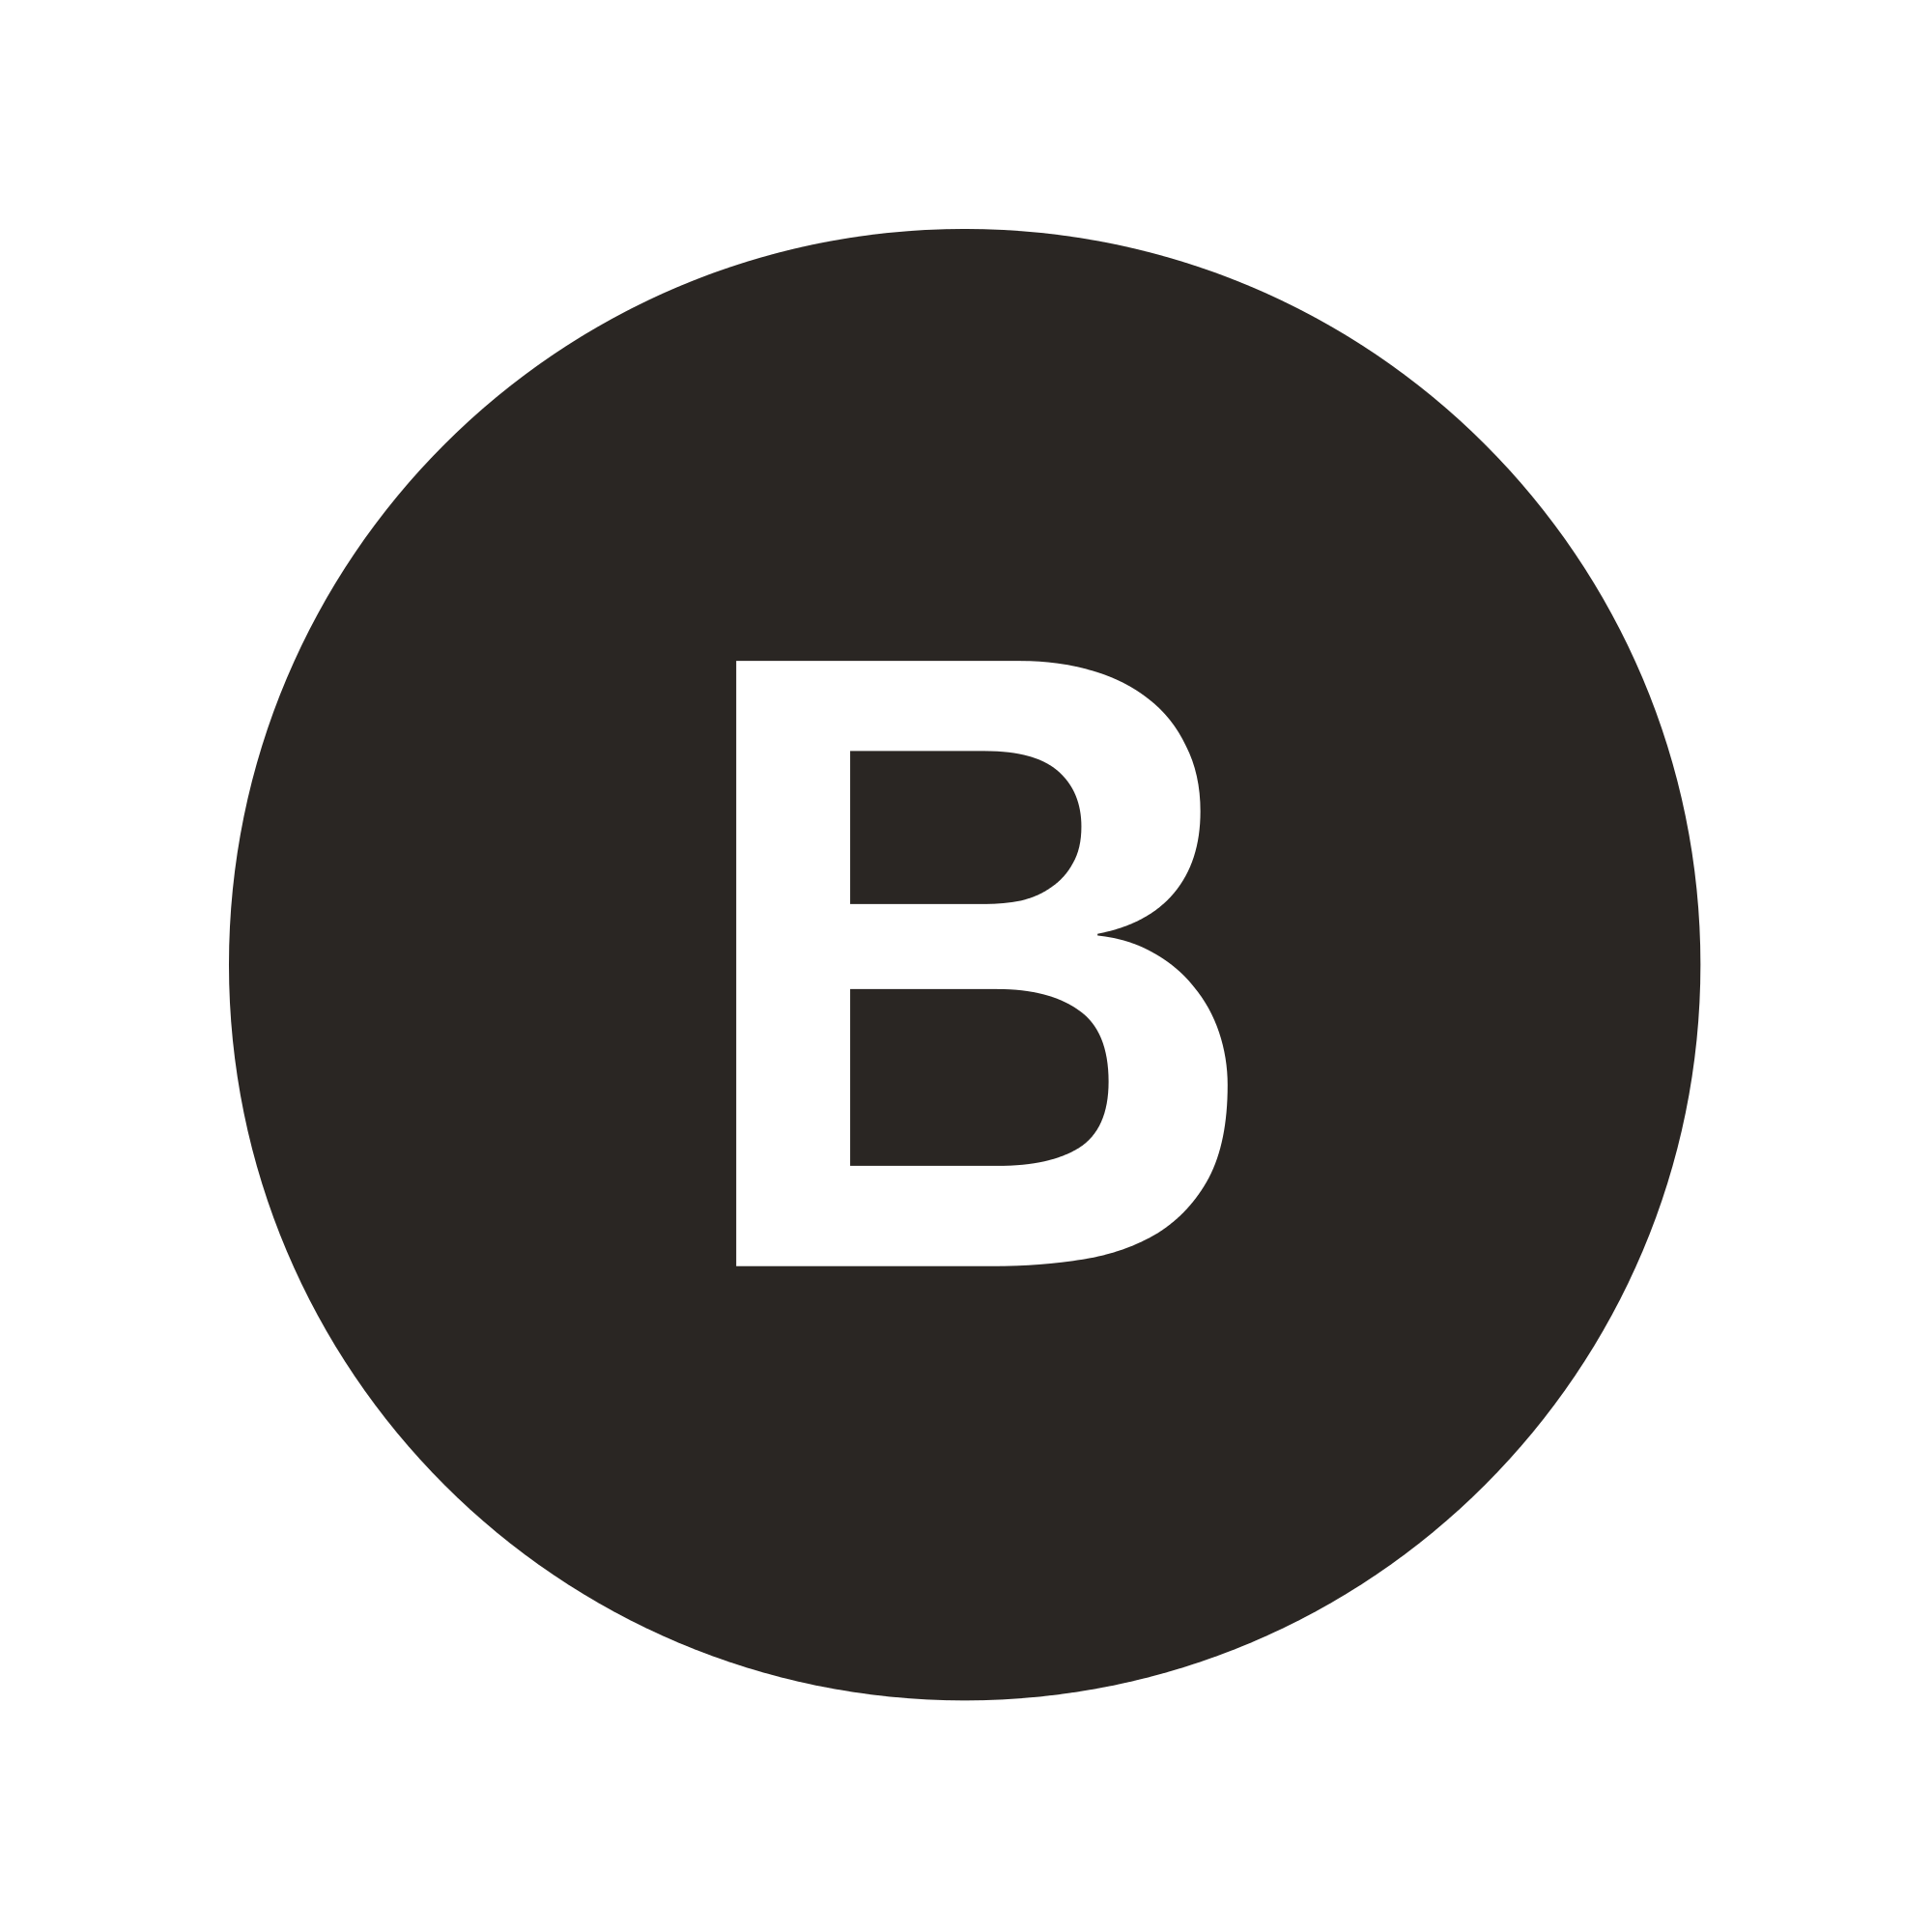 Favicon of https://urbanbusan.tistory.com